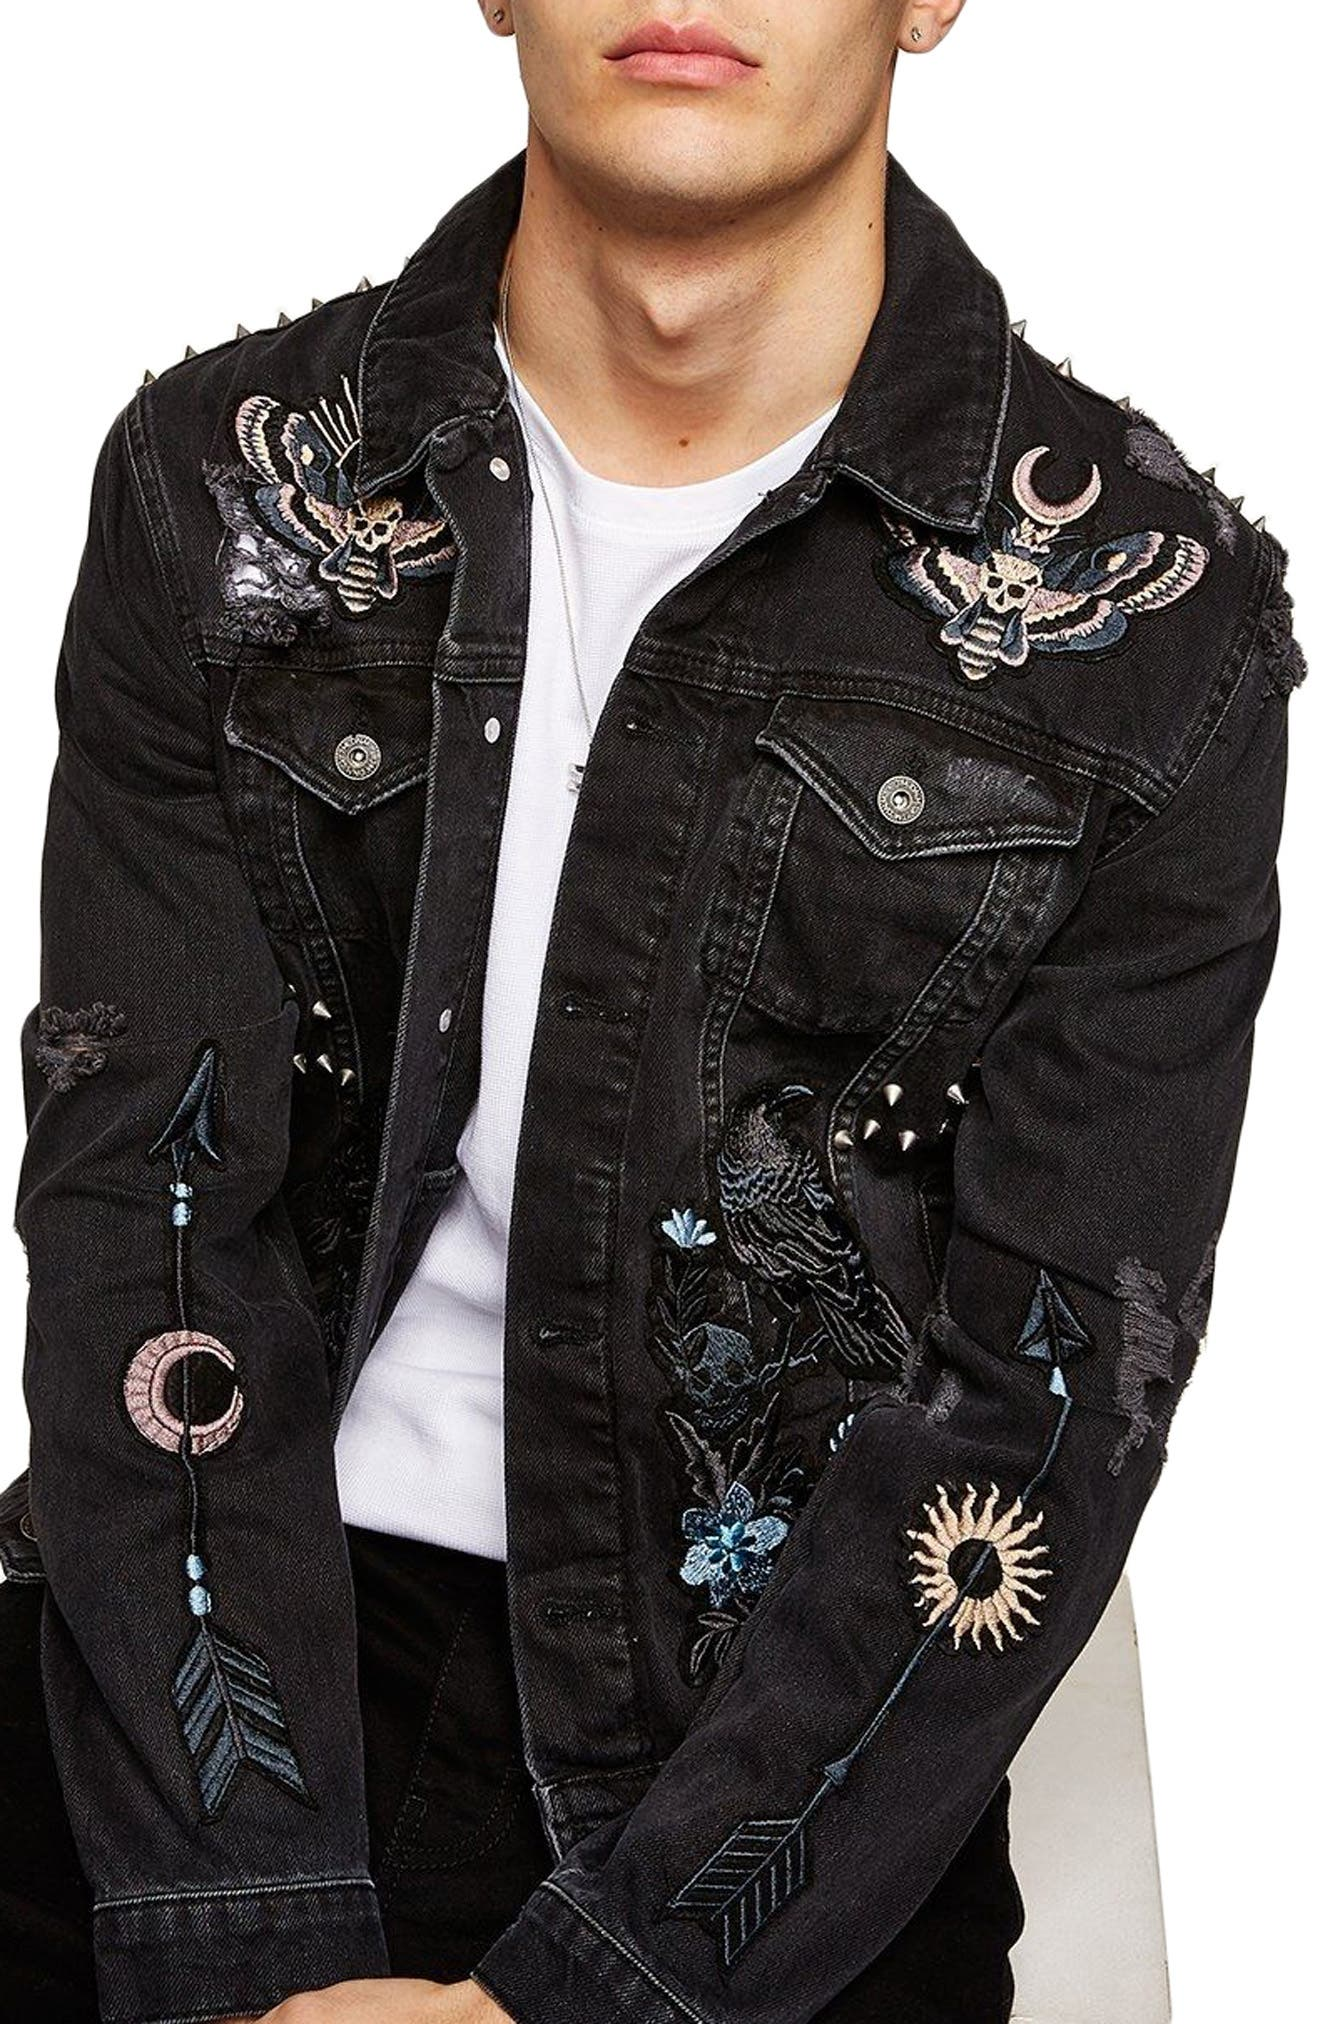 Sleepy Hollow Slim Fit Denim Jacket with Patches,                             Main thumbnail 1, color,                             001